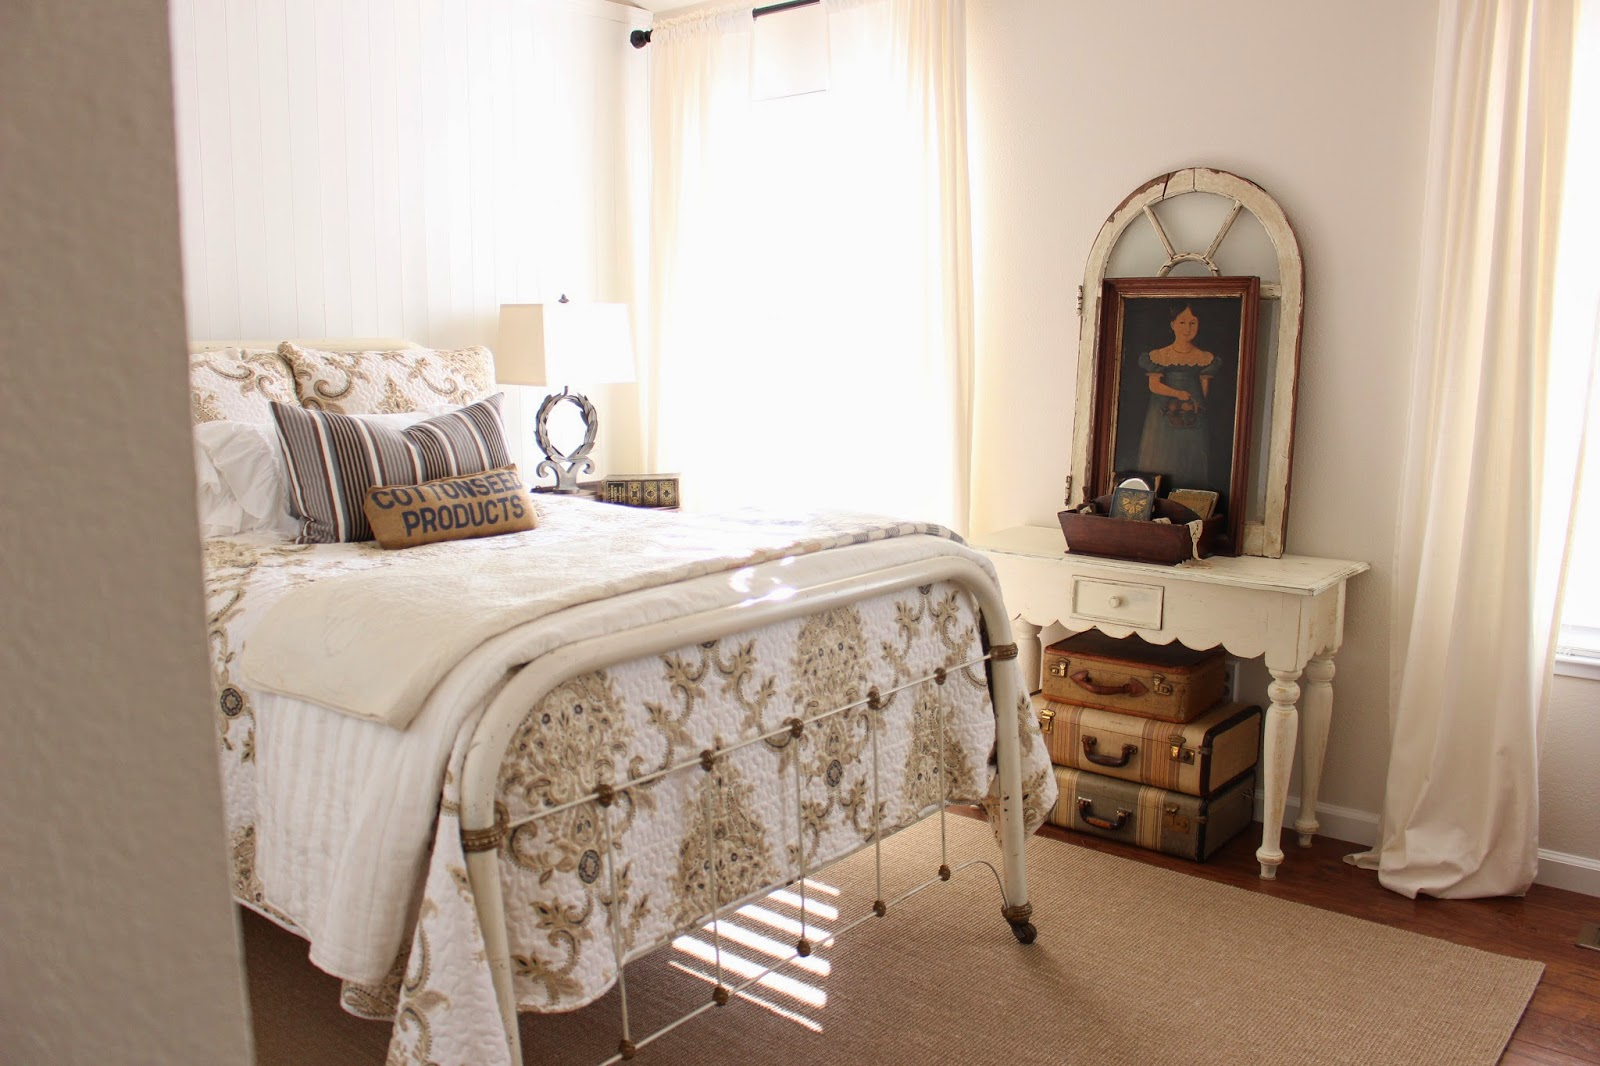 Sweet cottage dreams farmhouse style guest room for Farmhouse style bed